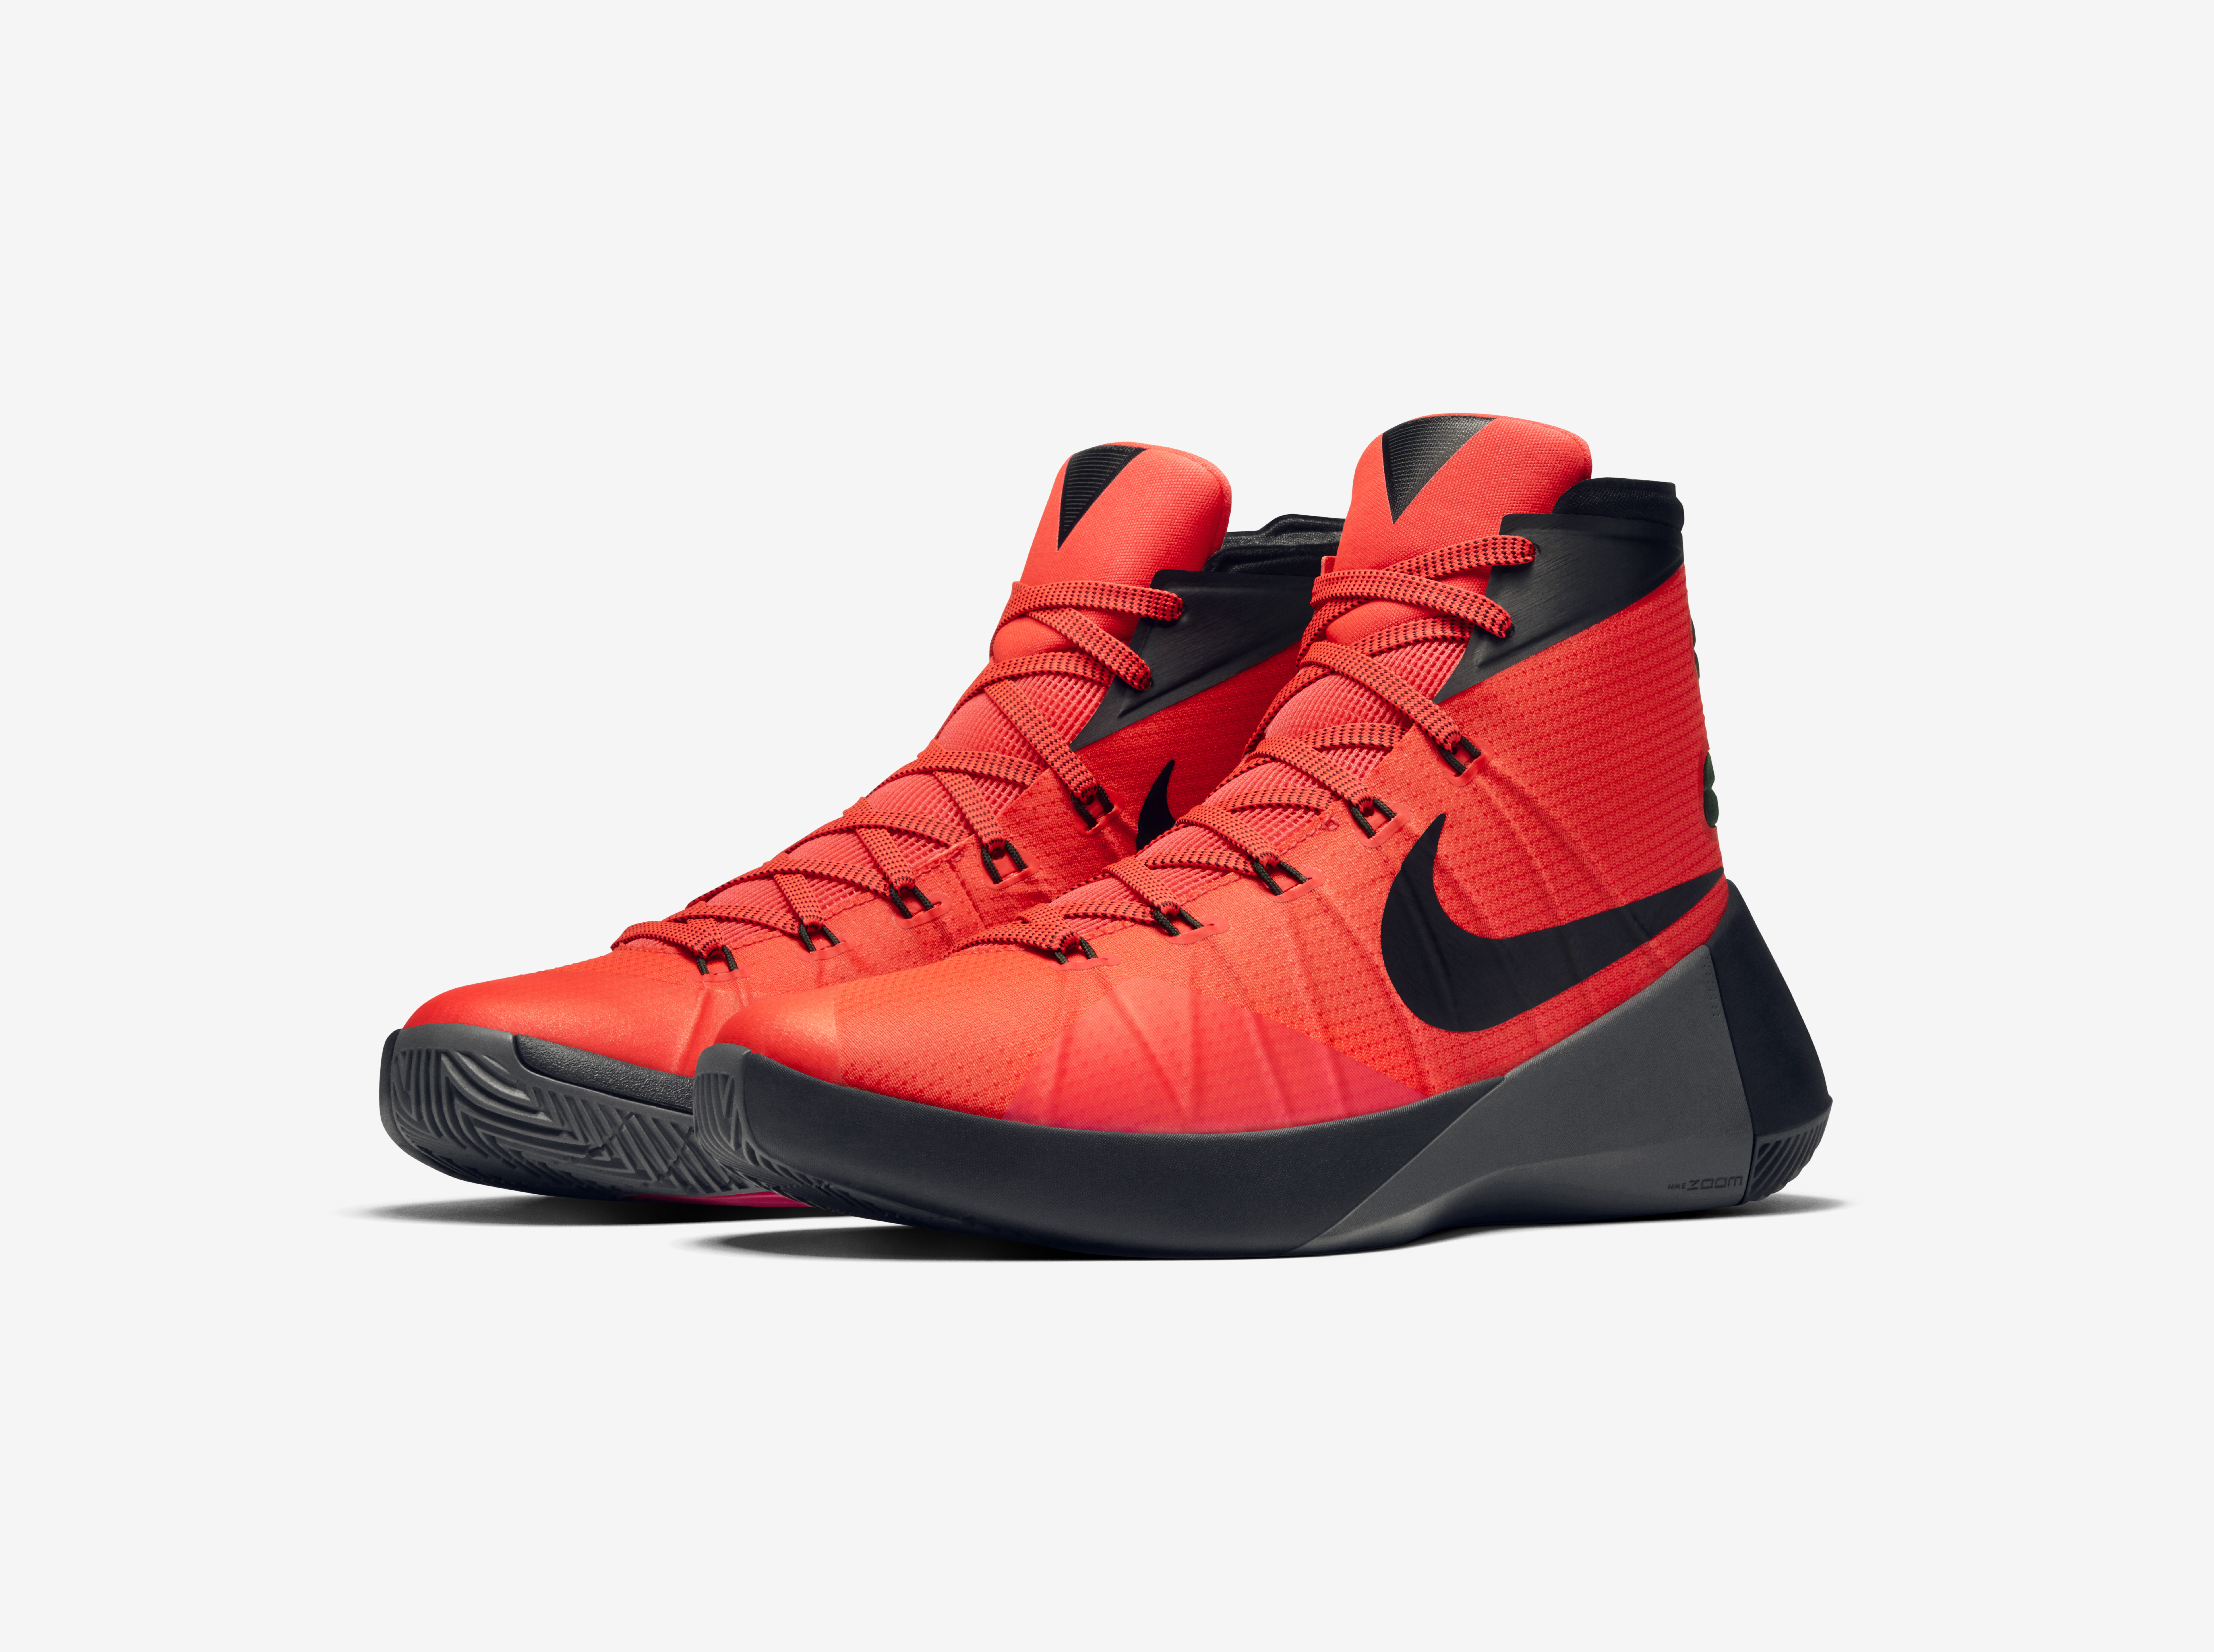 kd 5 black and red nike hyperdunk sneakers